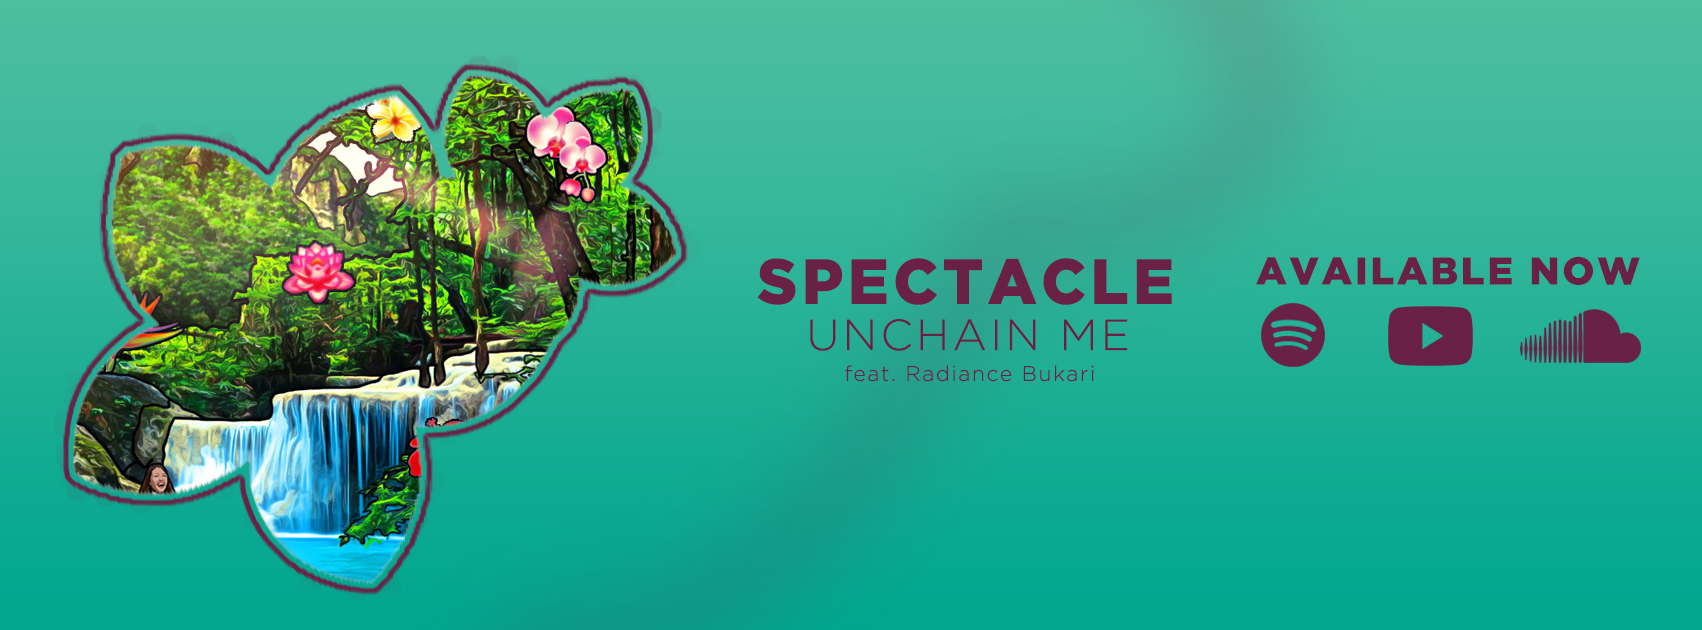 Spectacle_UnChainMe_Banner.jpg